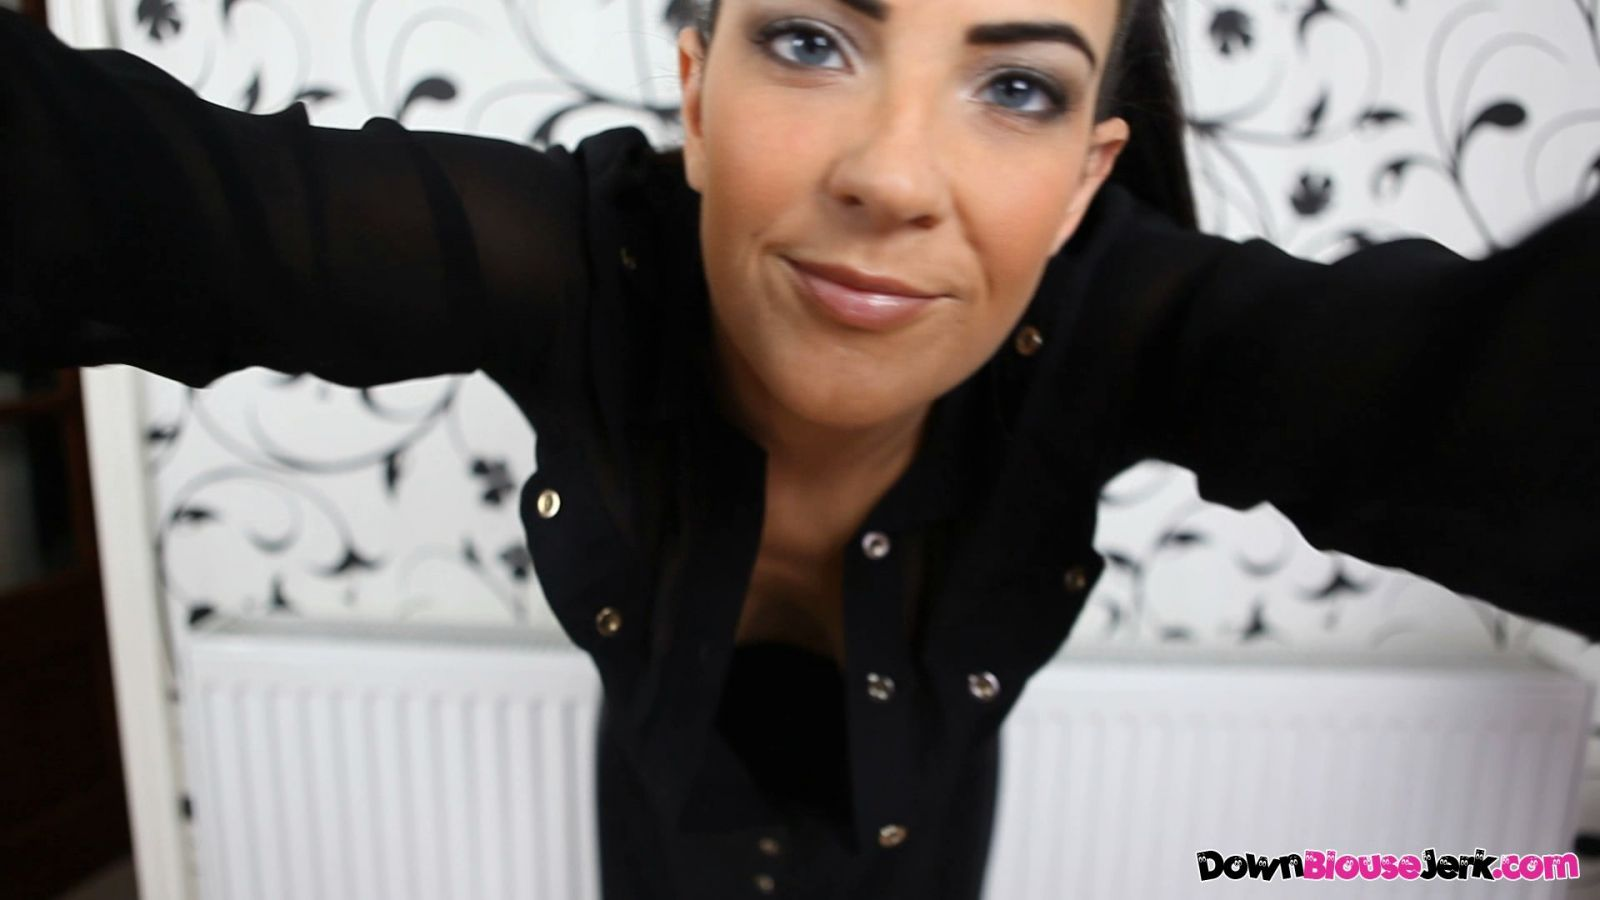 Becky Jane A Trip To The Hairdressers Hd 0h05m52 000s